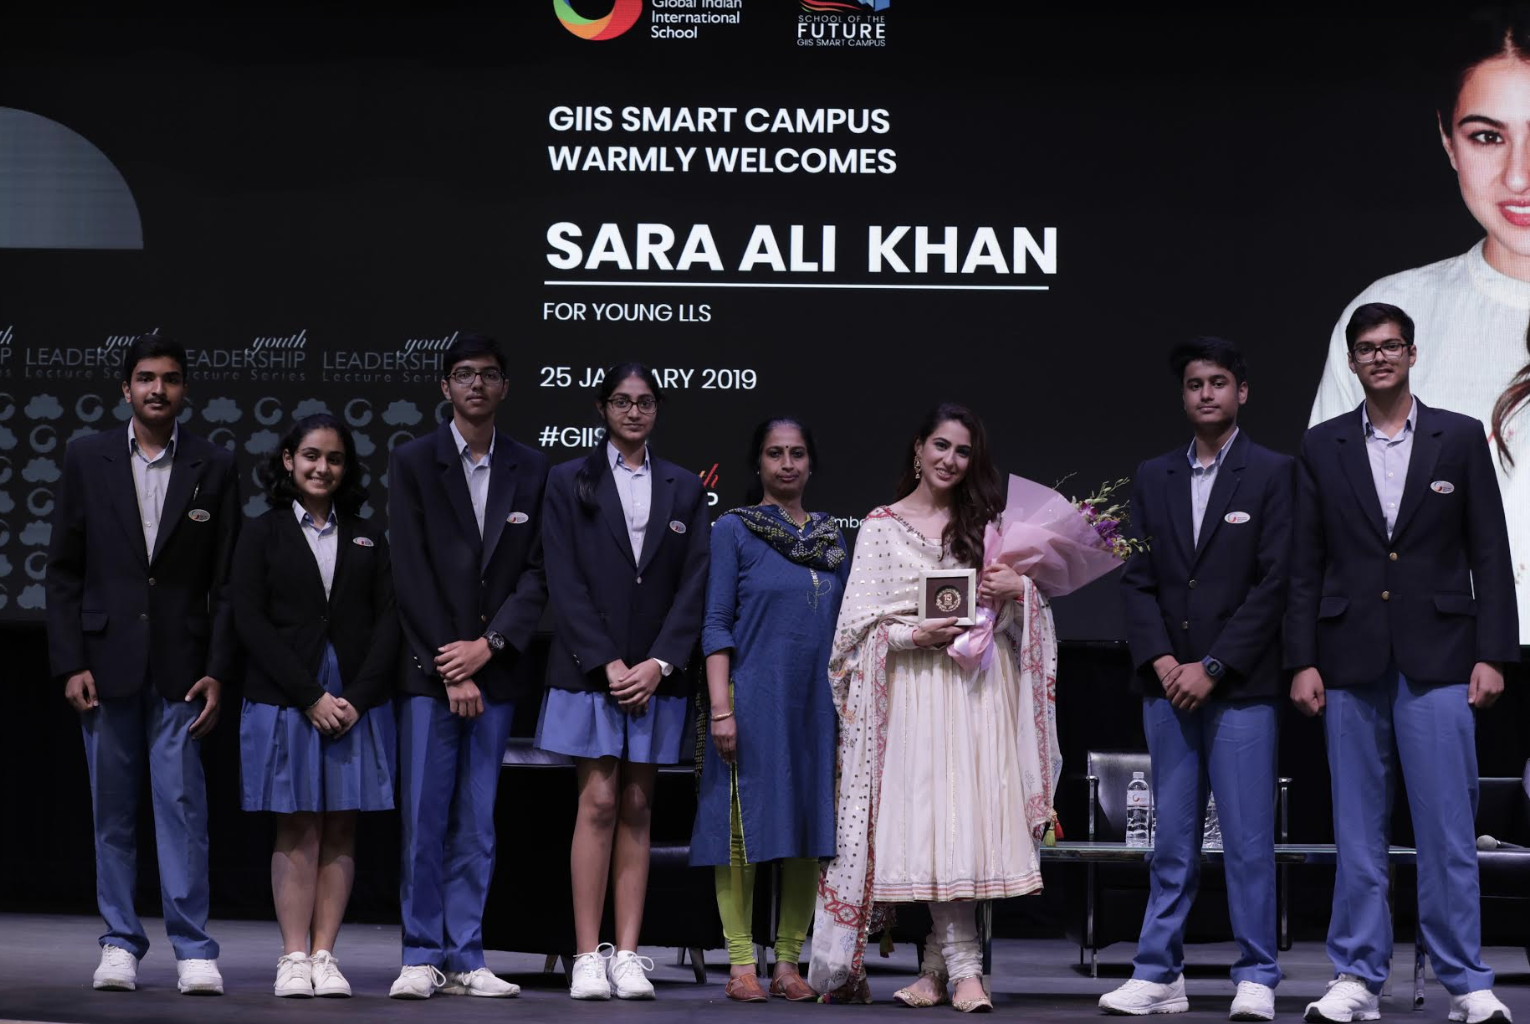 Sara Ali Khan who made her Bollywood debut with Hindi film Kedarnath followed by Simmba in quick succession was in Singapore recently. Seen here engaging with students of Global Indian International School (GIIS) Photo: GIIS